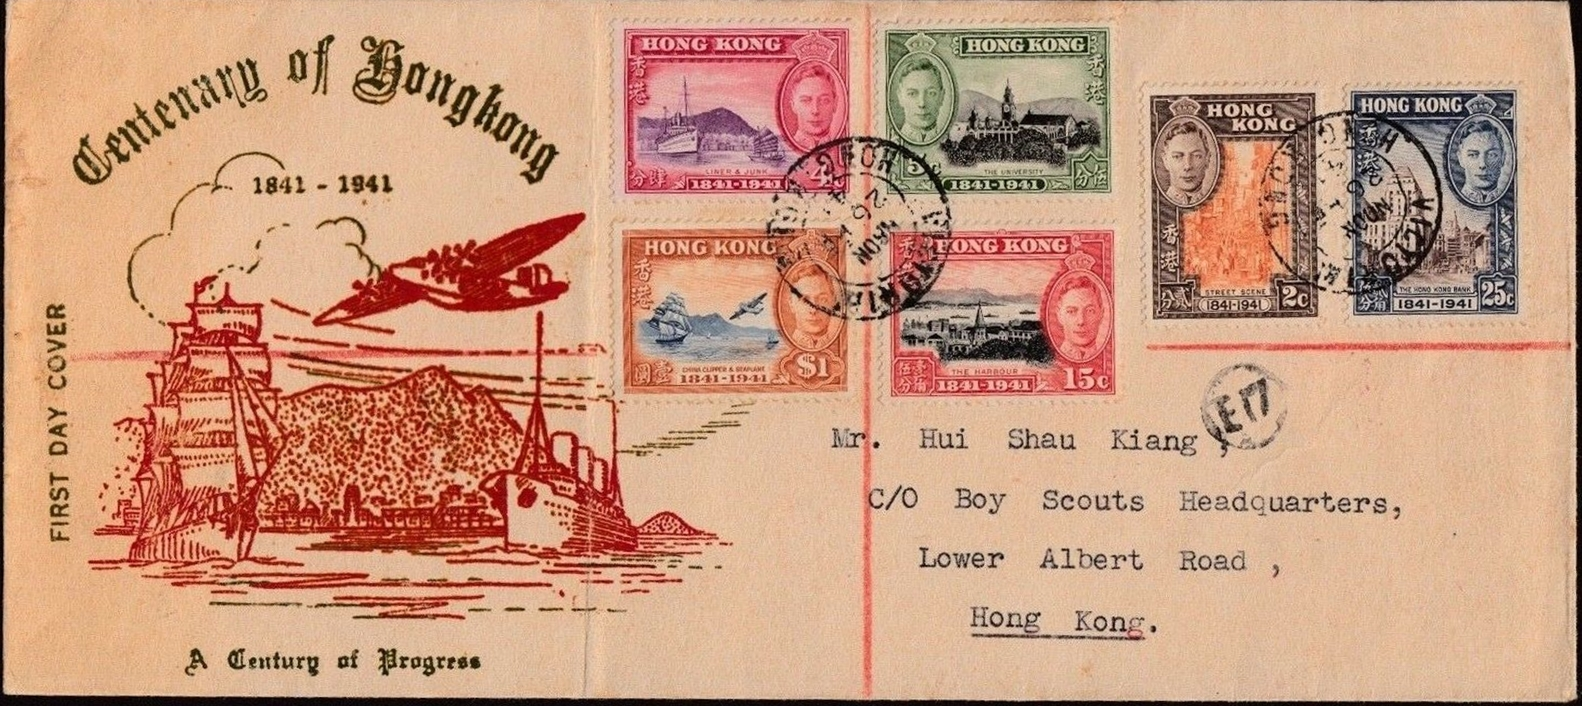 Hong Kong - Scott #168-173 (1941) first day cover [NIMC2019] - image sourced from active eBay auction